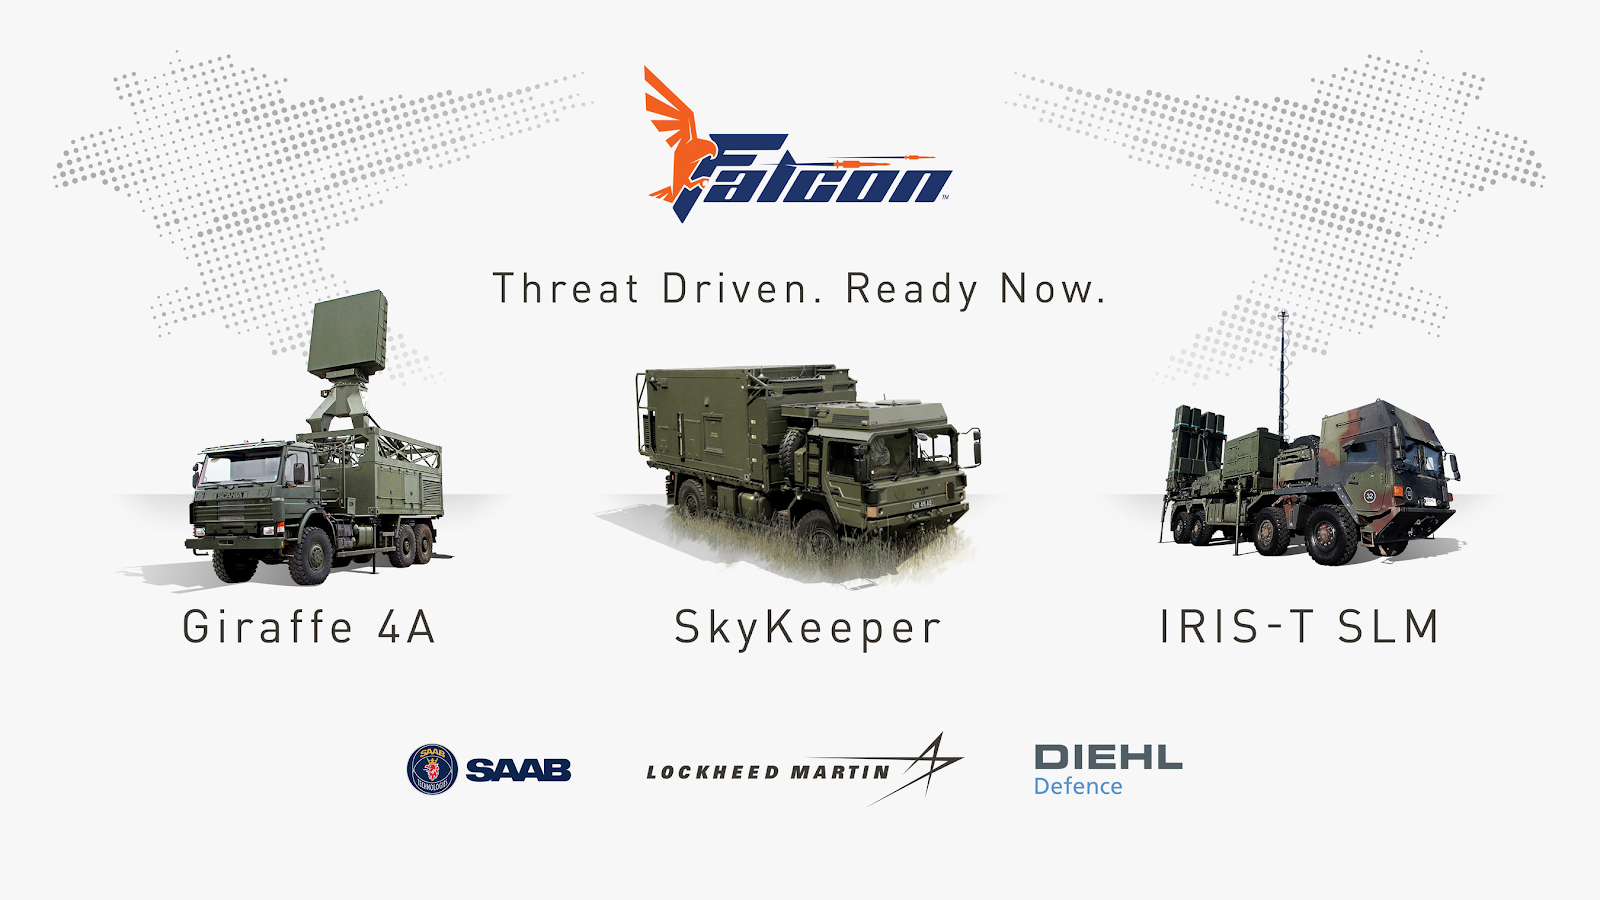 Promotional material showing the three primary components of the Falcon Air Defence System (from left to right: the Saab Giraffe 4A radar, the Lockheed Martin SkyKeeper battle management system, and the Diehl IRIS-T-SLM launche). Source:  Lockheed Martin